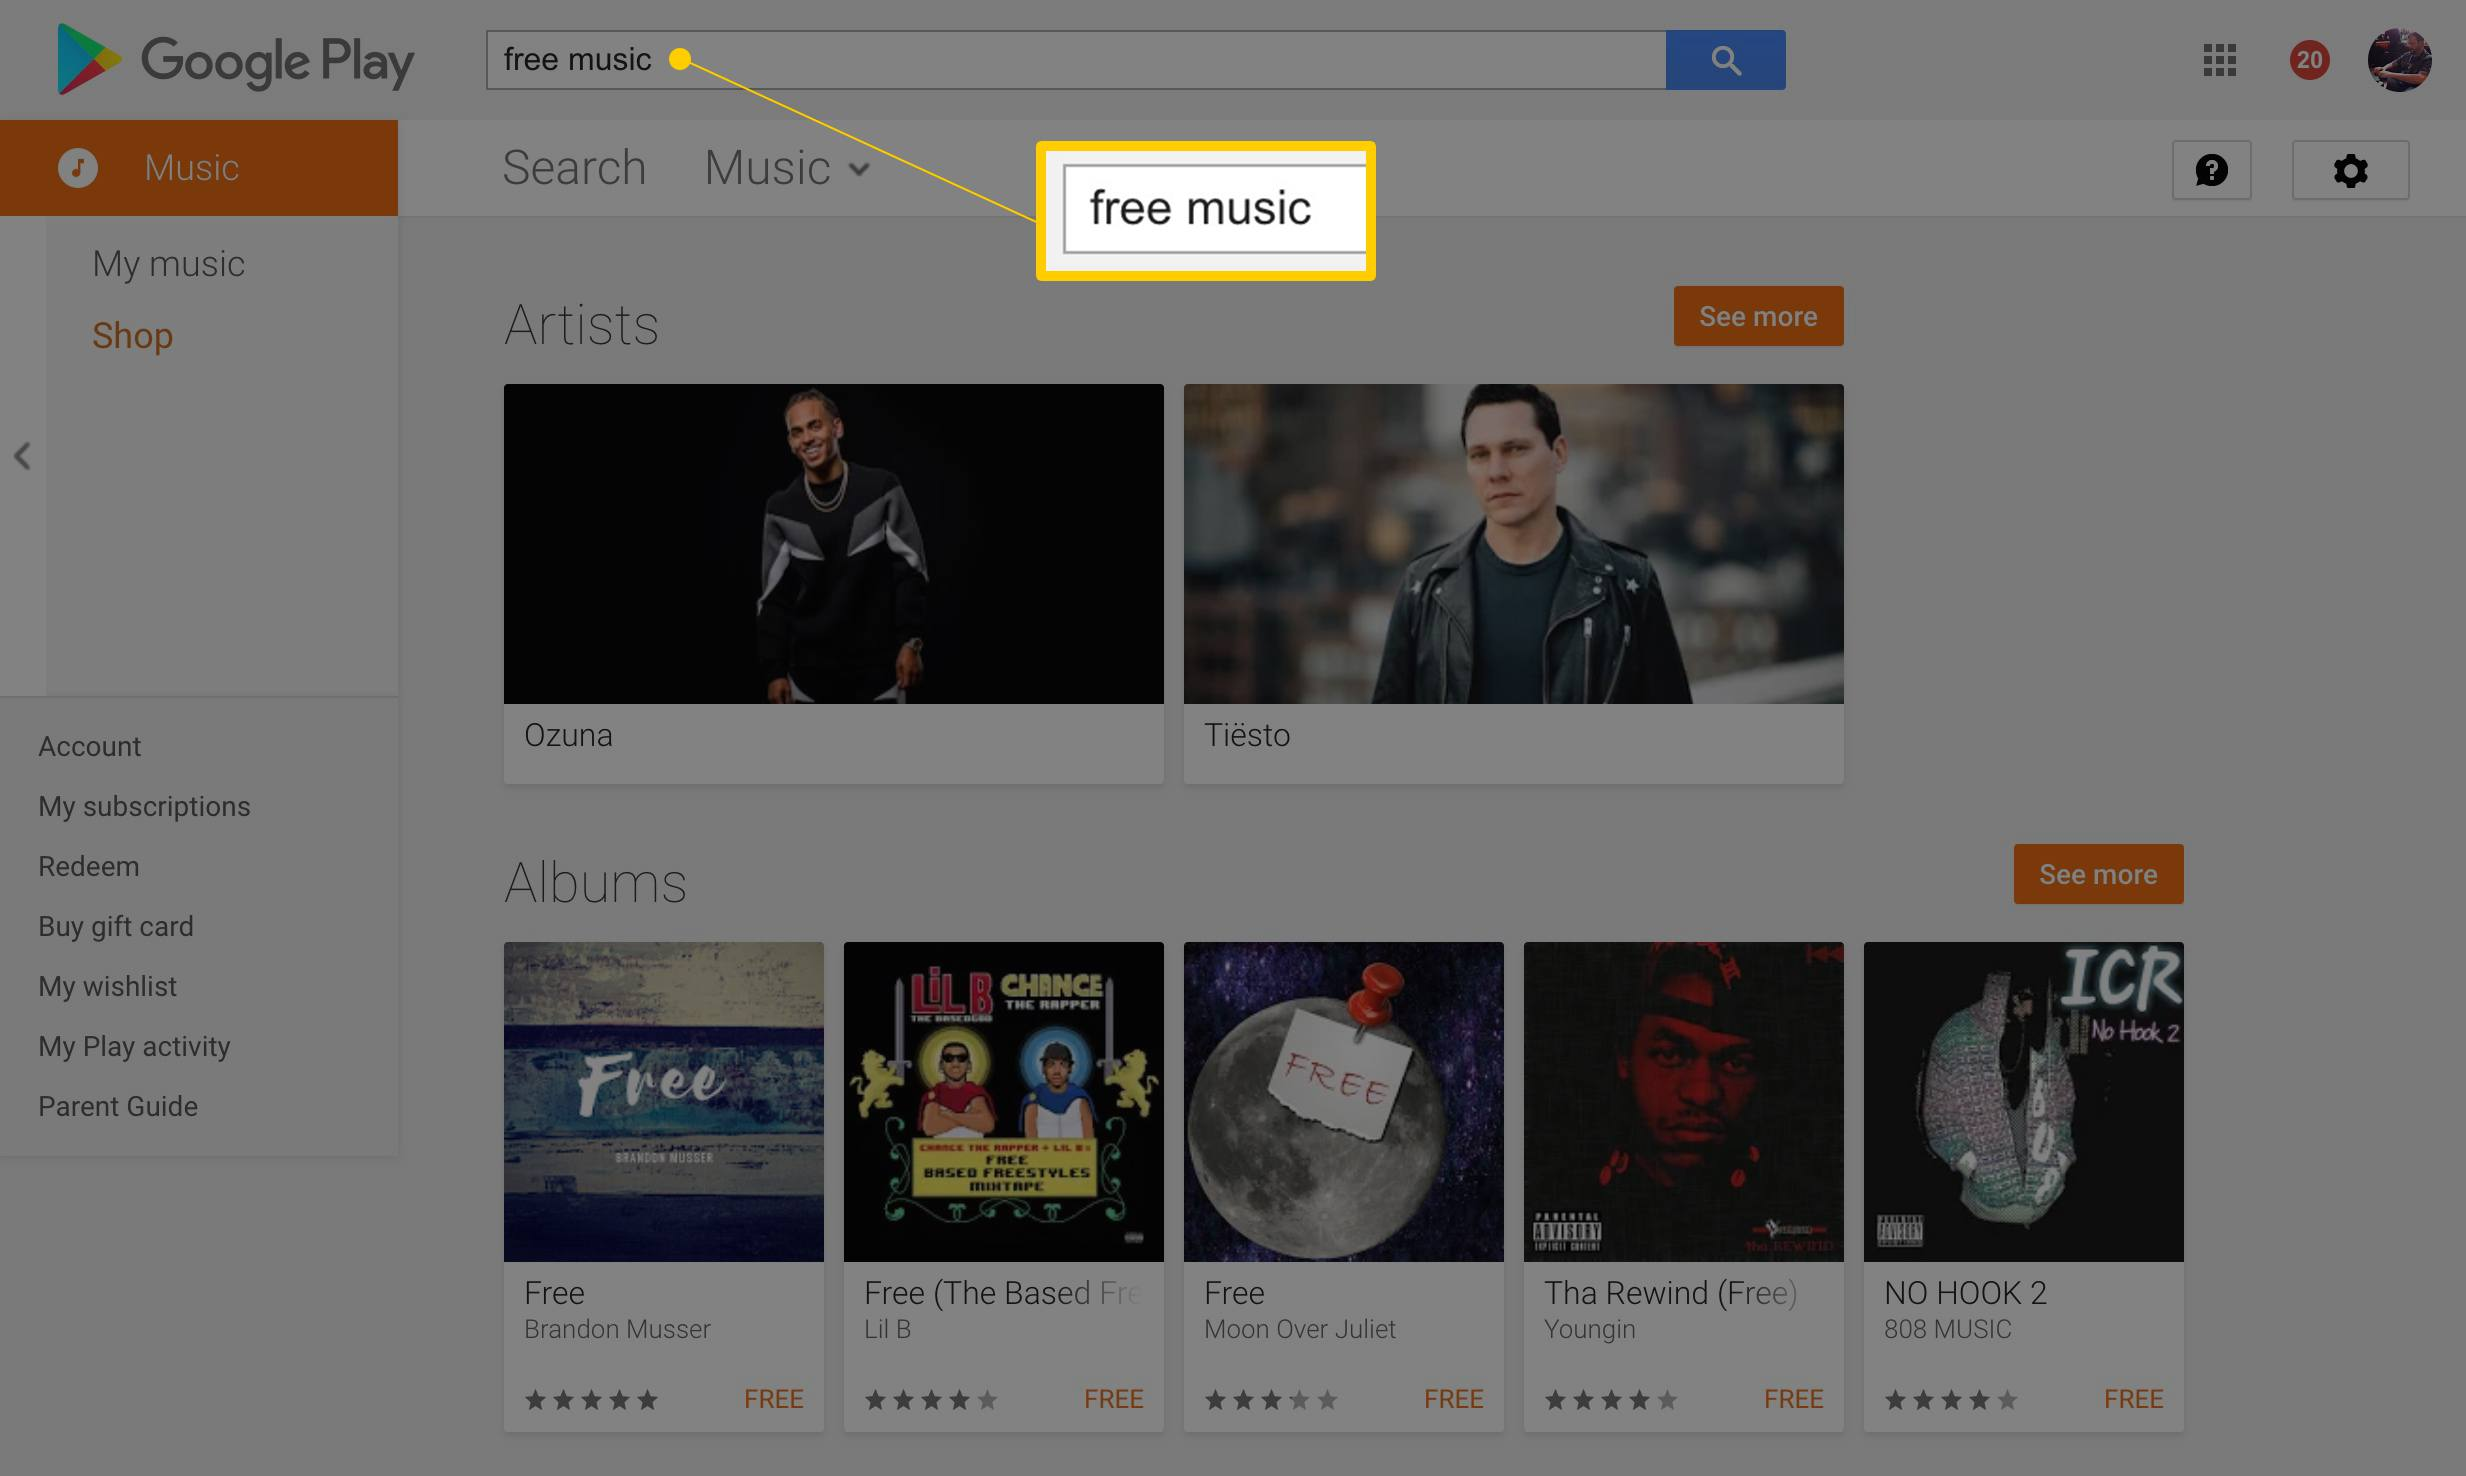 Free Music Search In Google Play